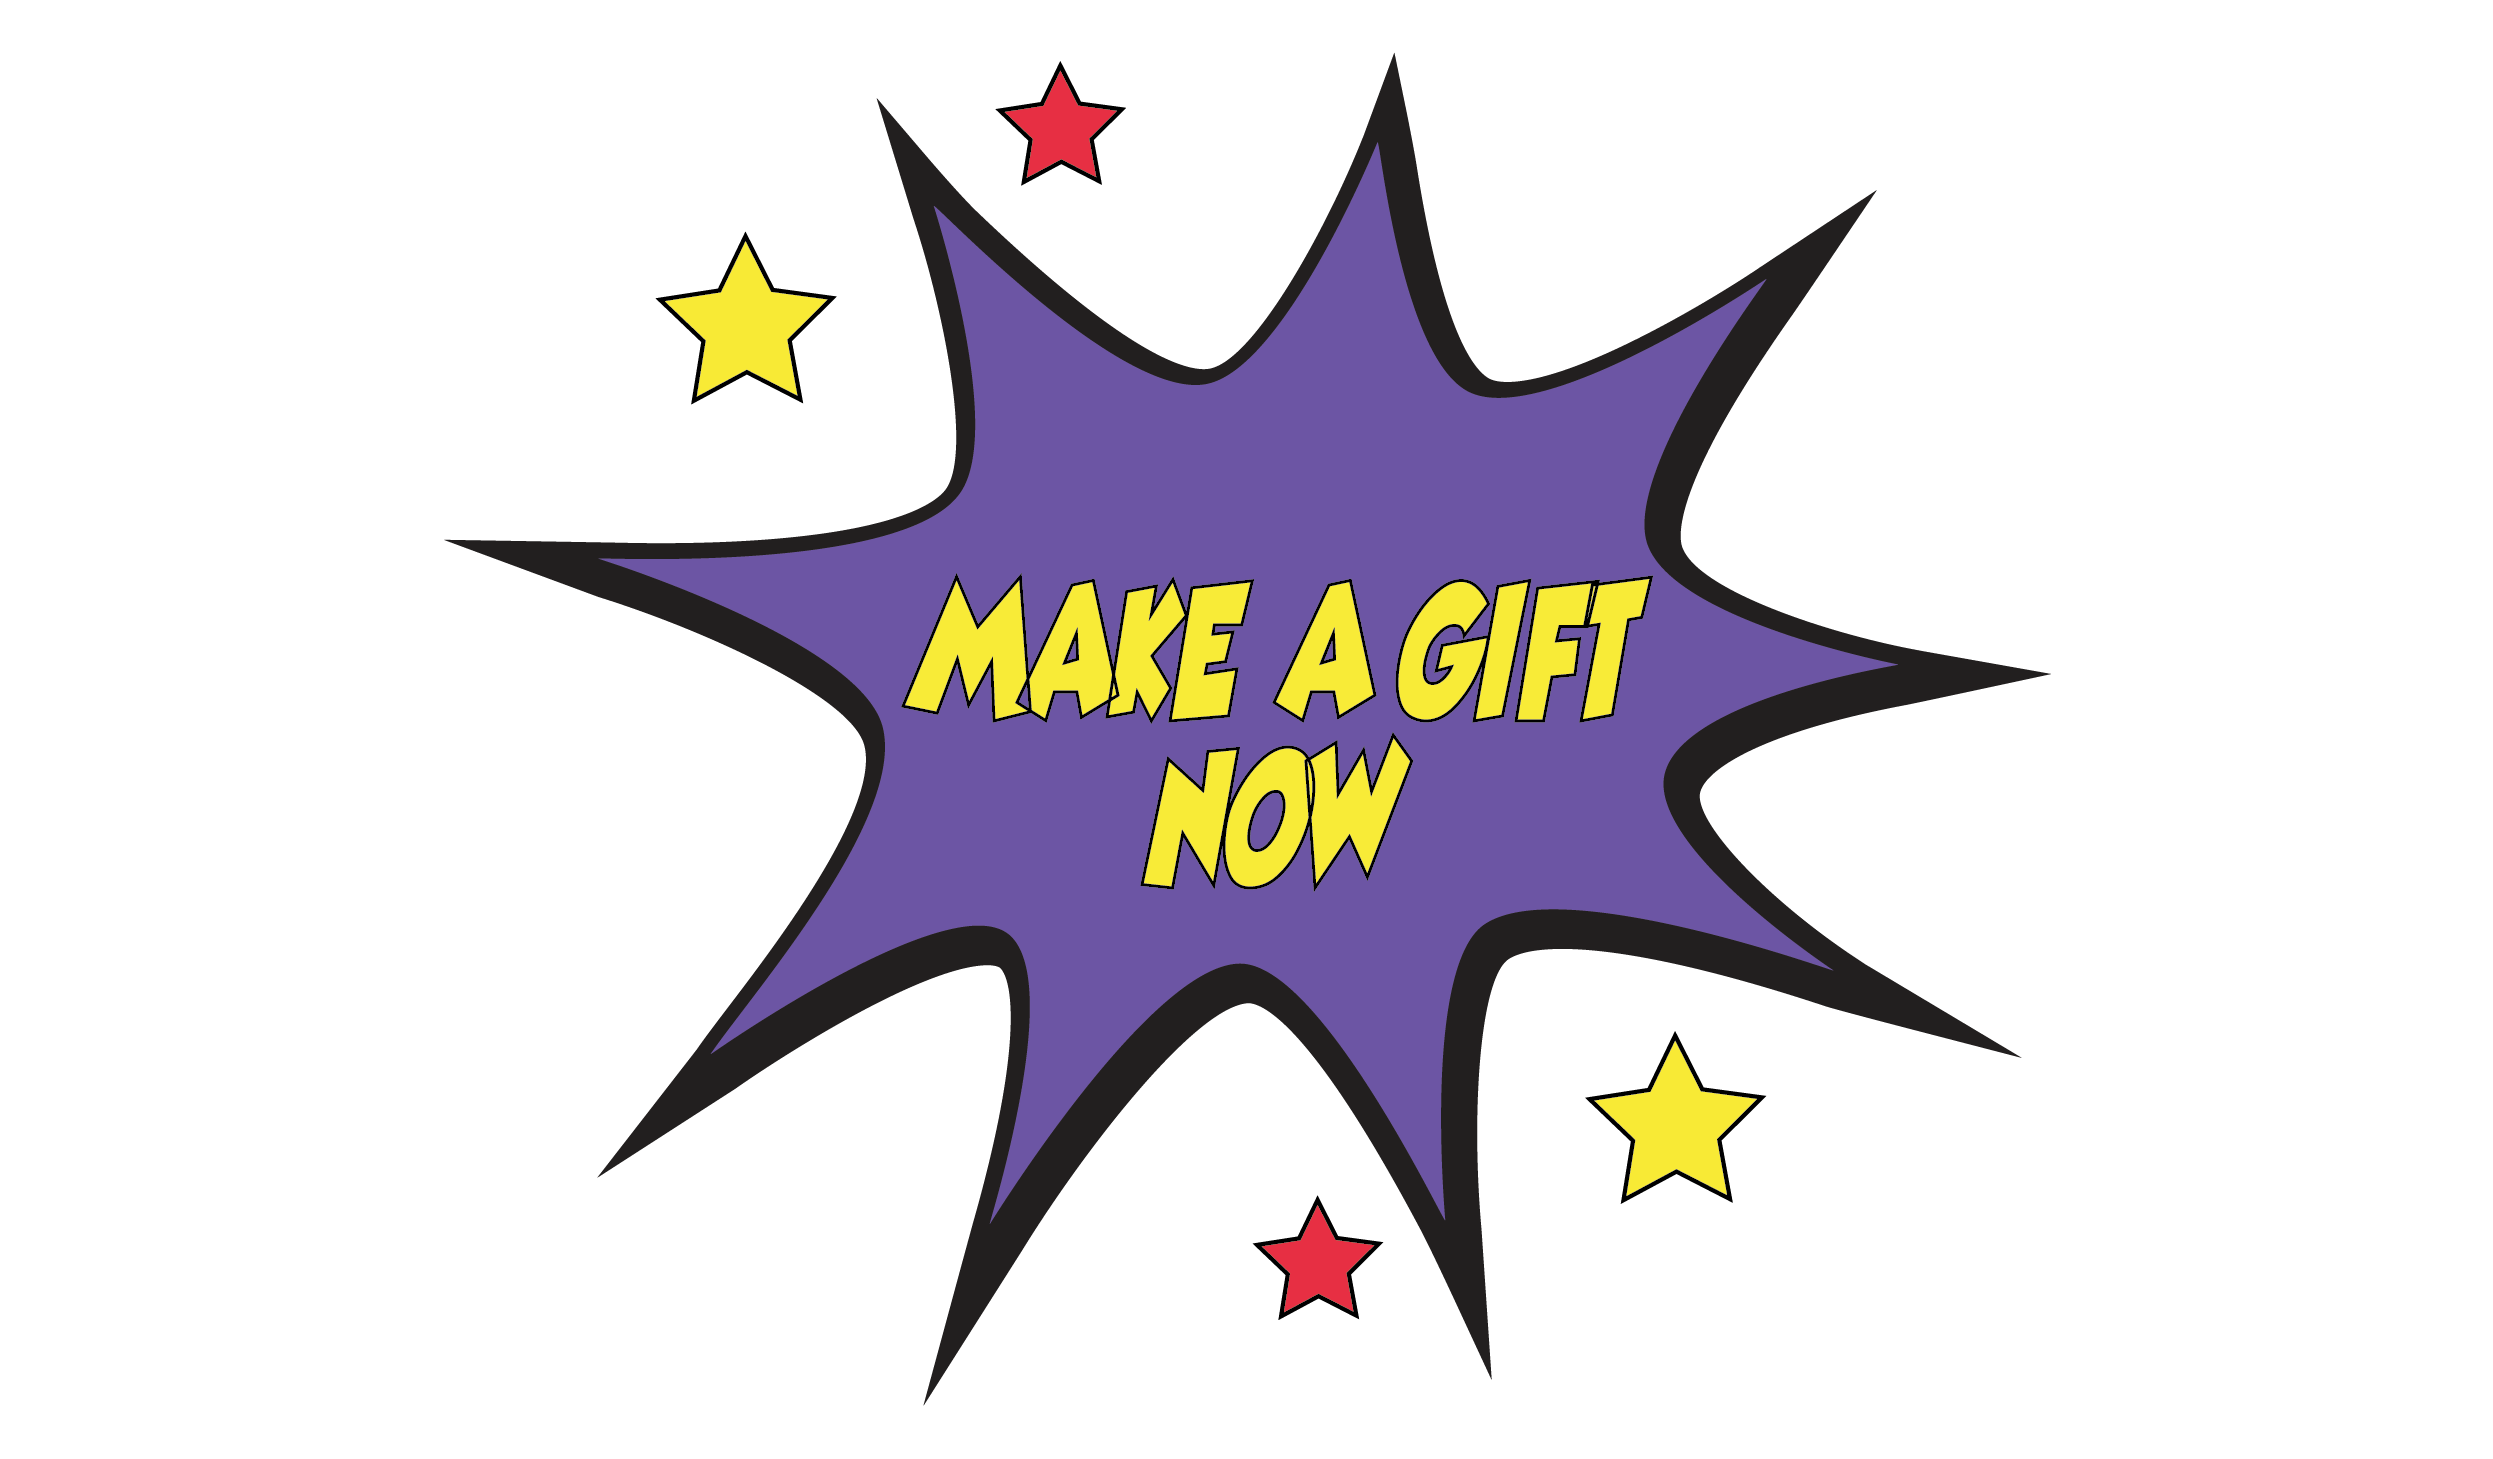 Make A Gift Now to Gala